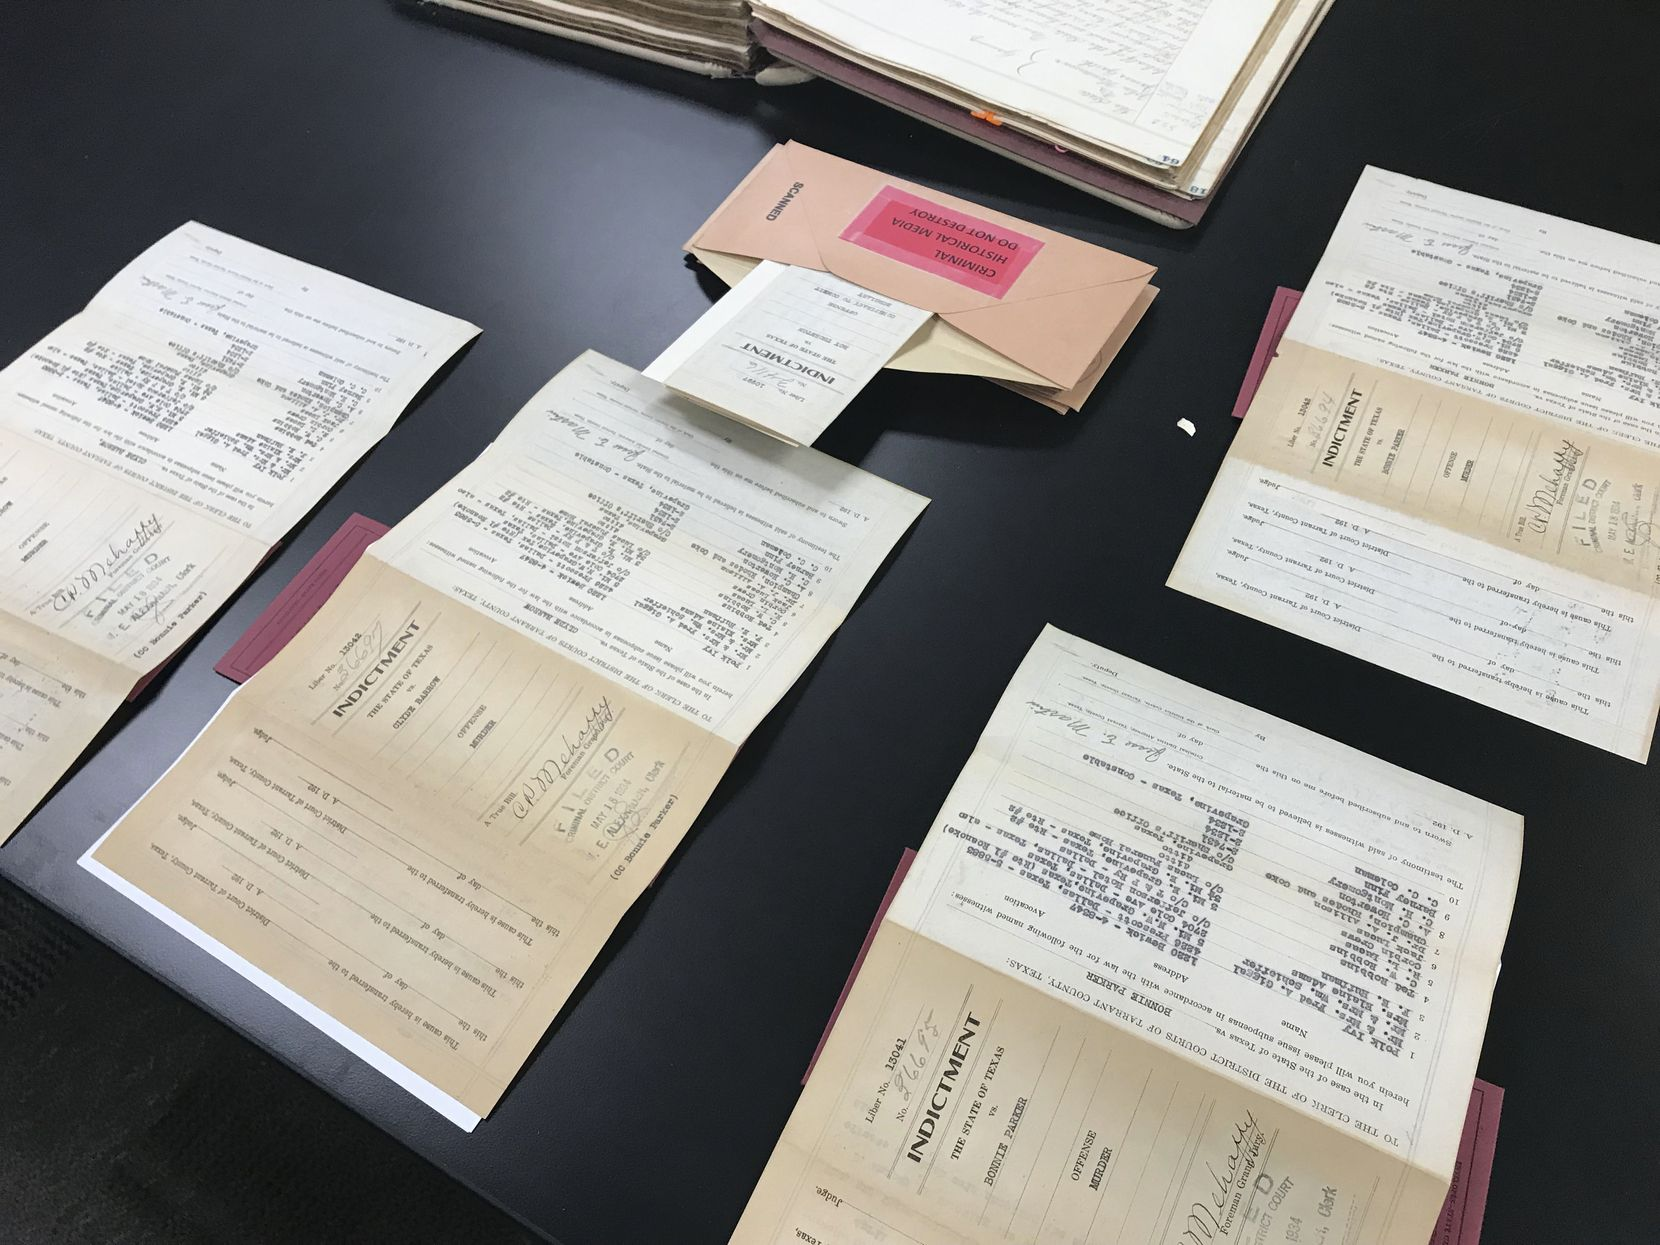 The original indictments, shown Feb. 7, 2019 in Fort Worth.